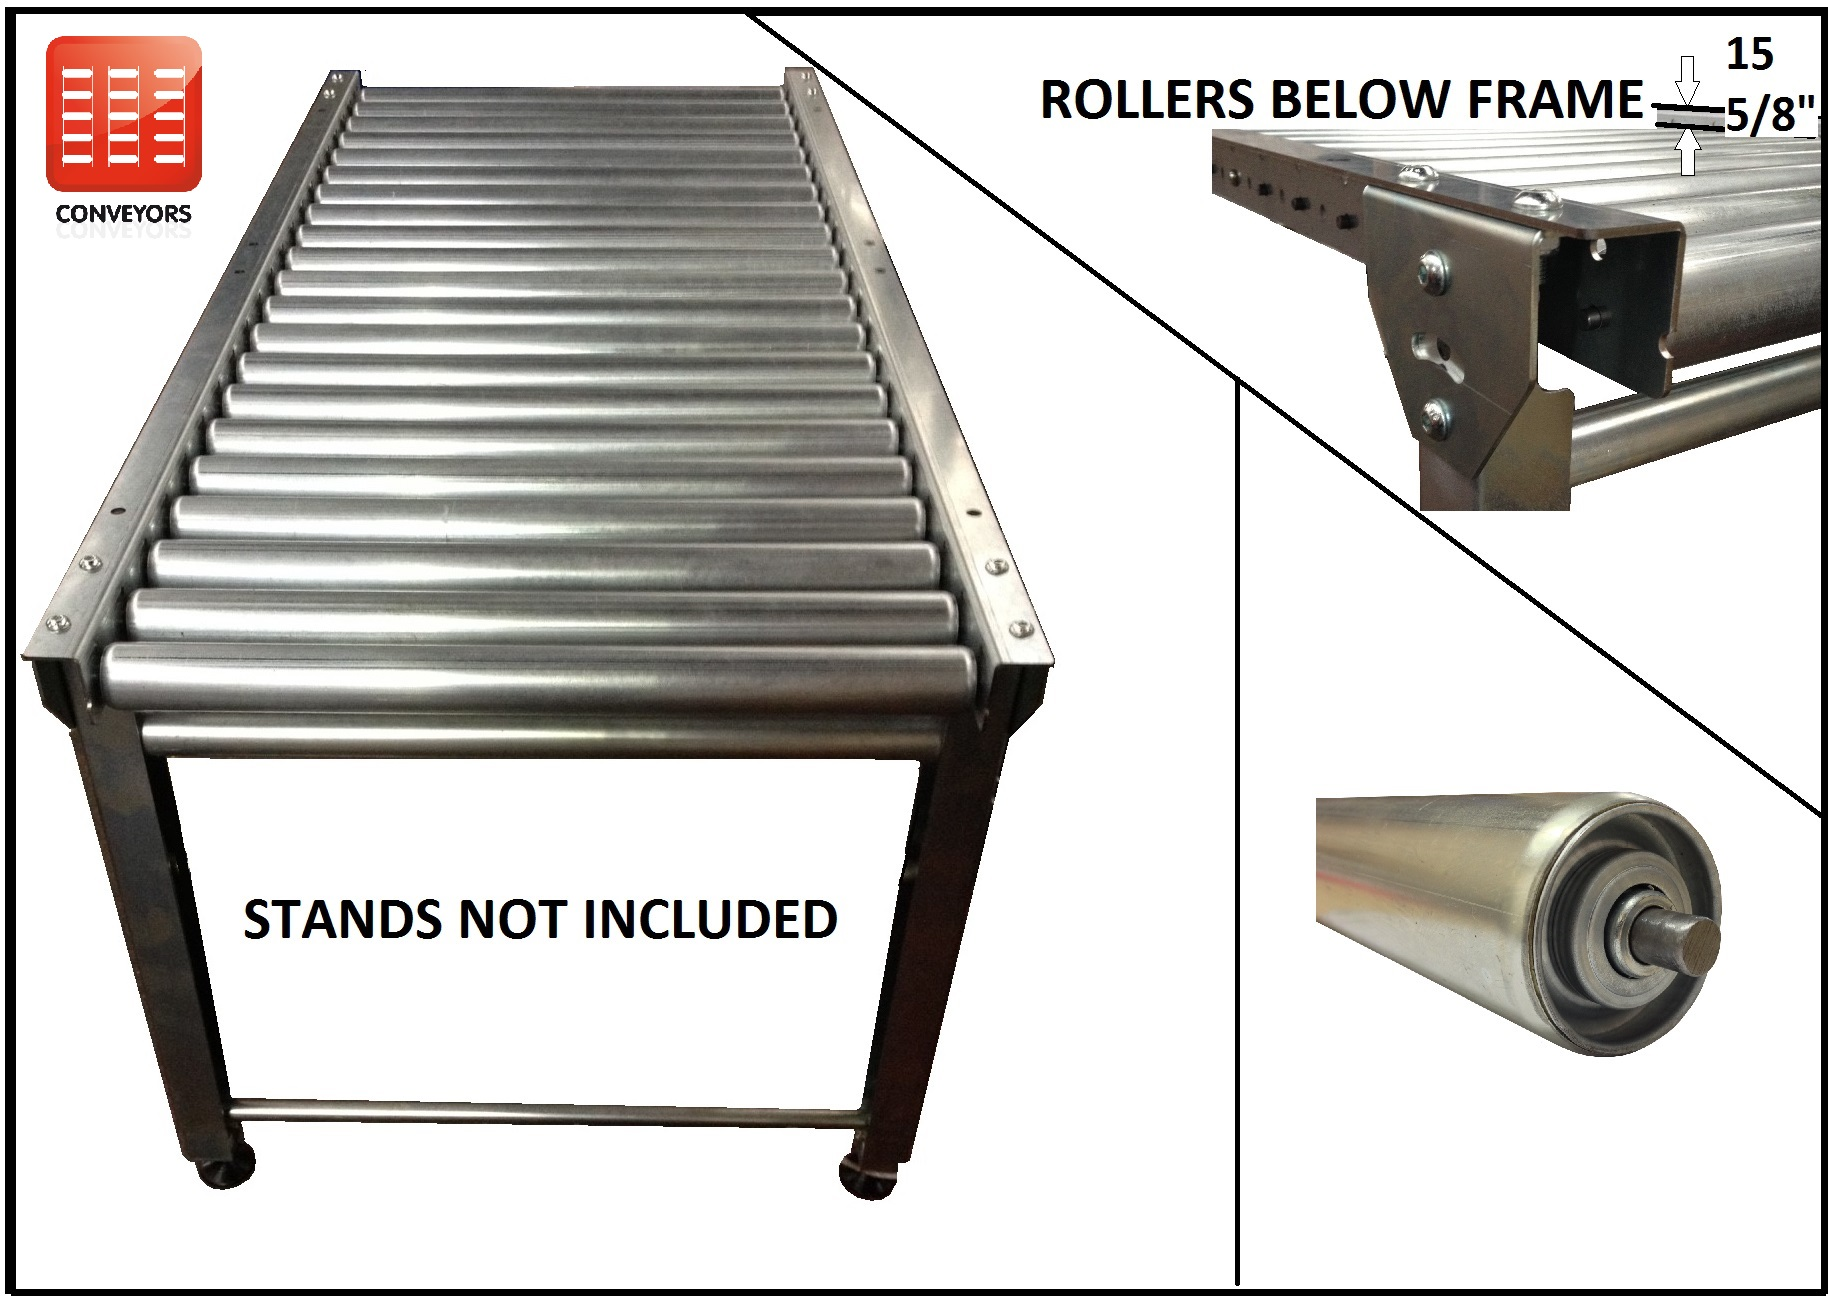 Conveyor Rollers | Conveyors For Sale - AED Rollers